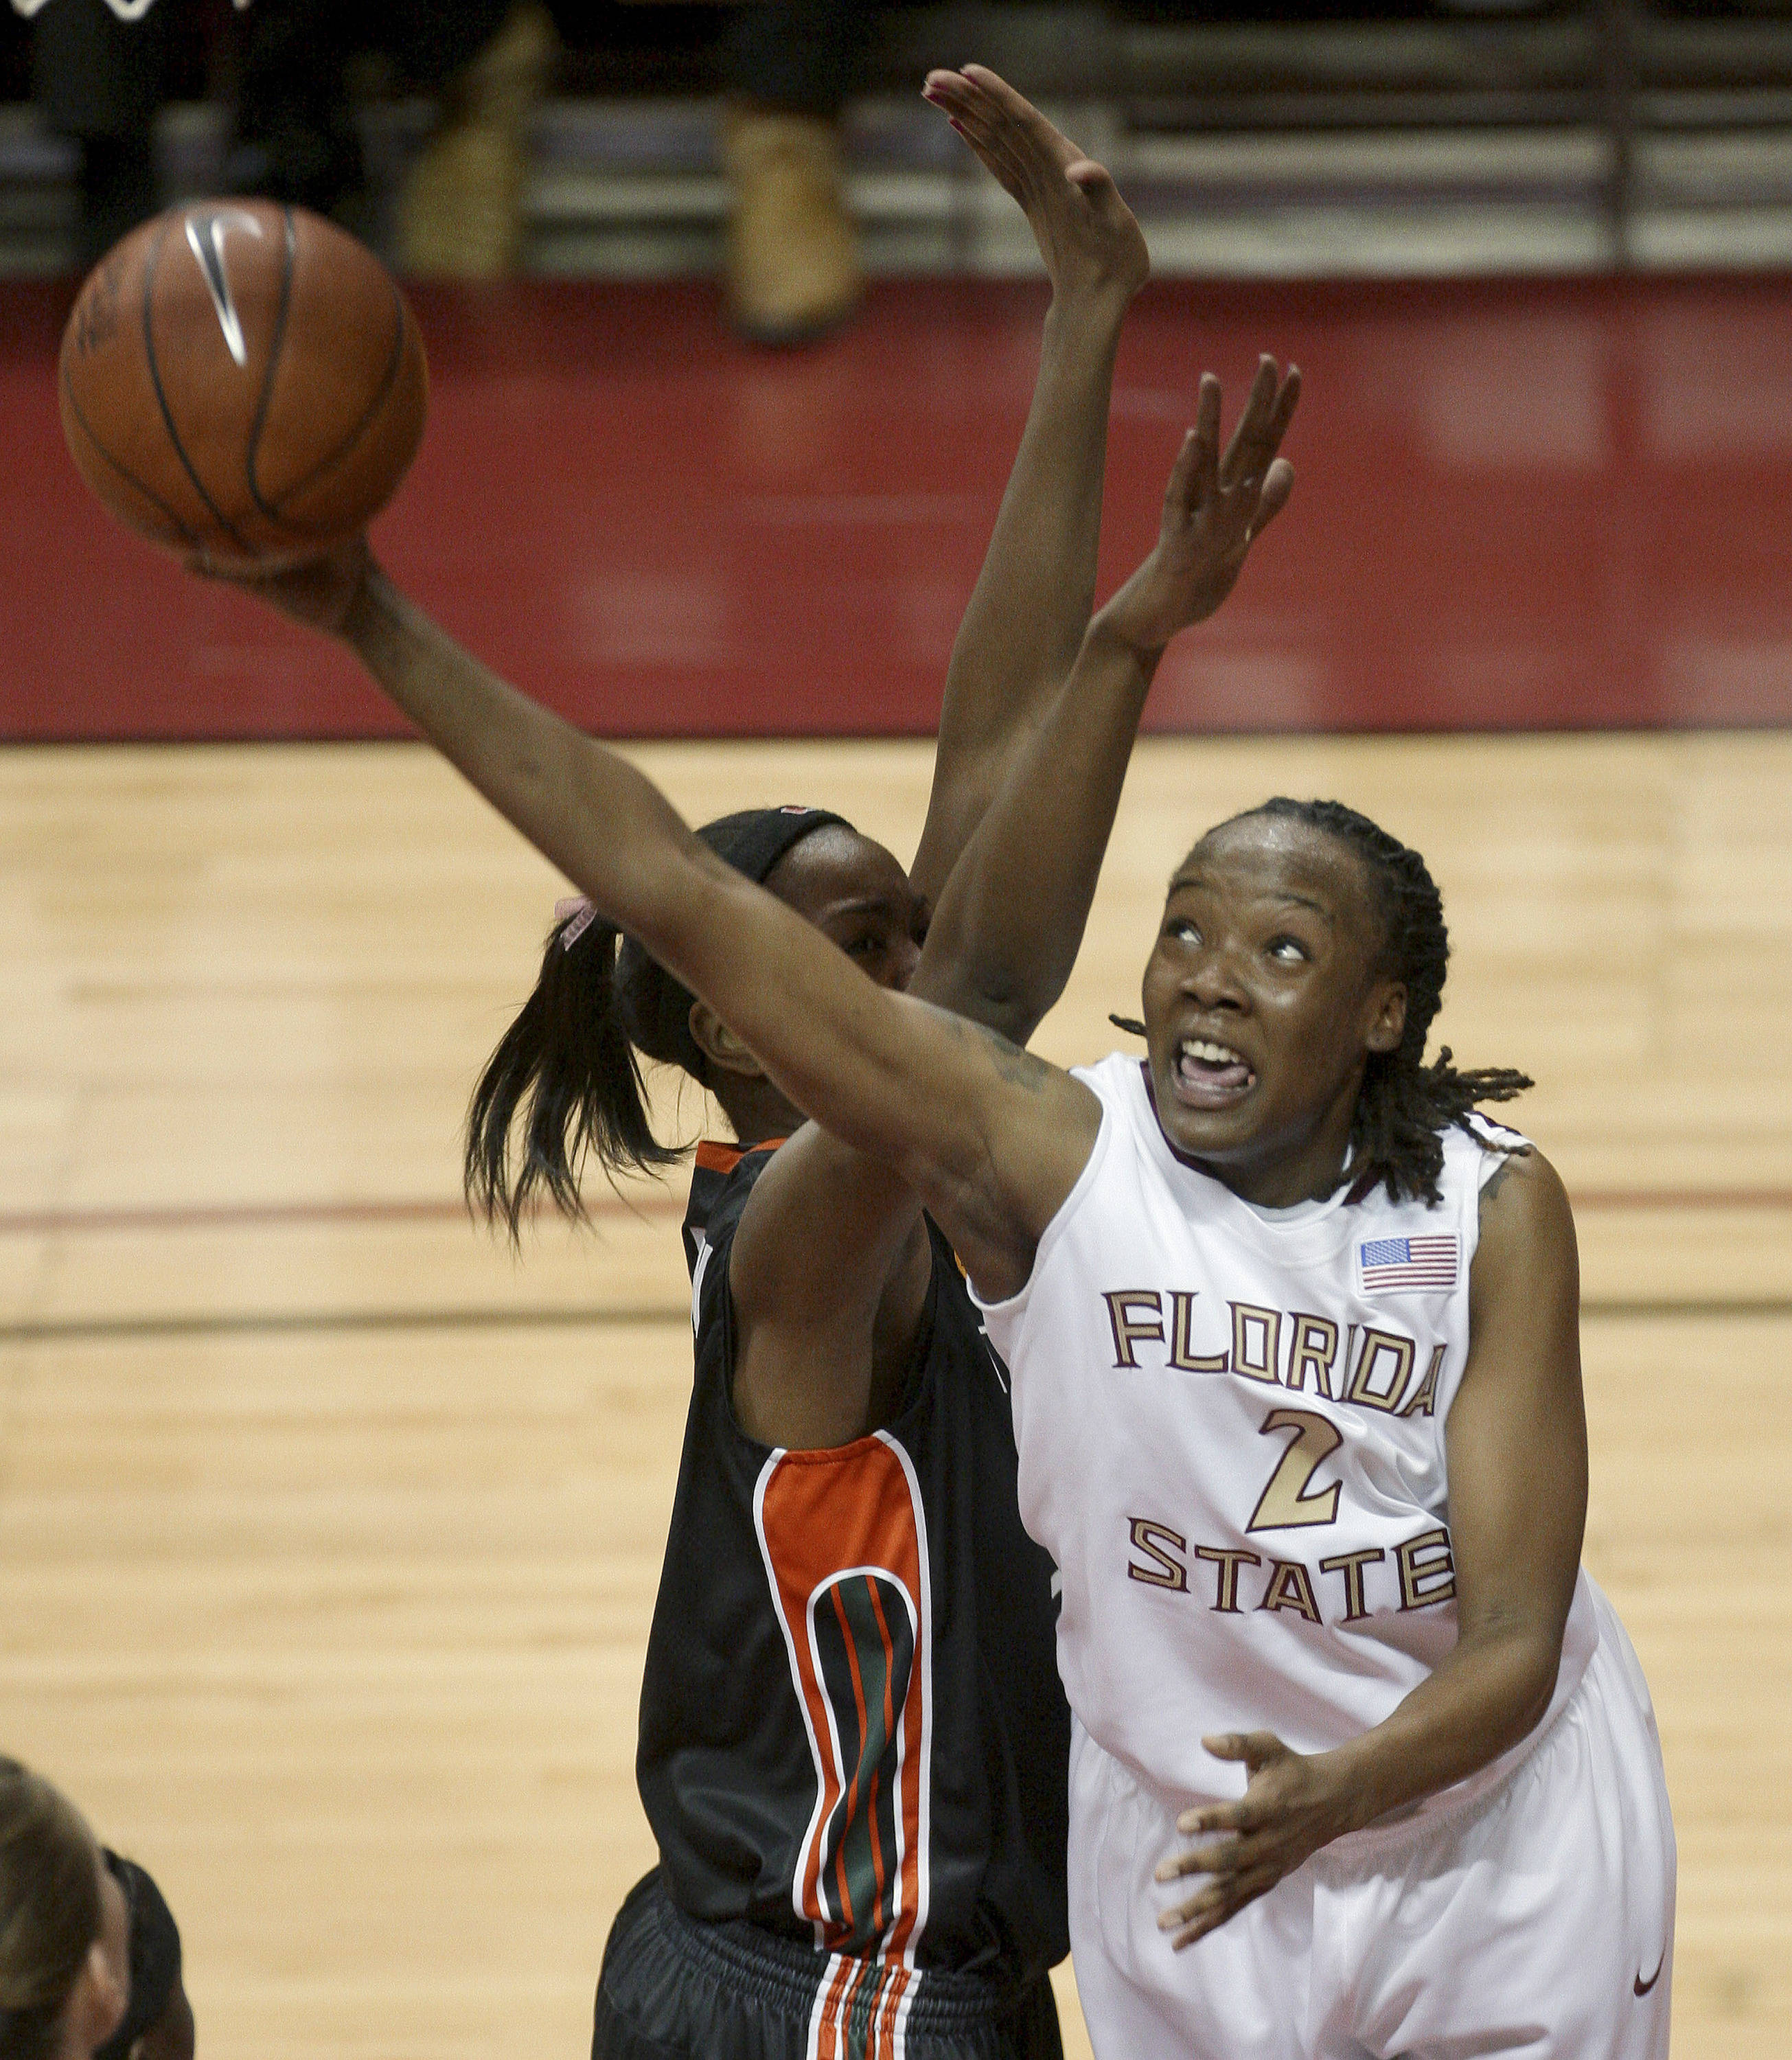 Florida State's Alysha Harvin, right, shoots past Miami's Sylvia Bullock during an NCAA college basketball game Thursday, Feb. 25, 2010, in Tallahassee, Fla. (AP Photo/Phil Coale)